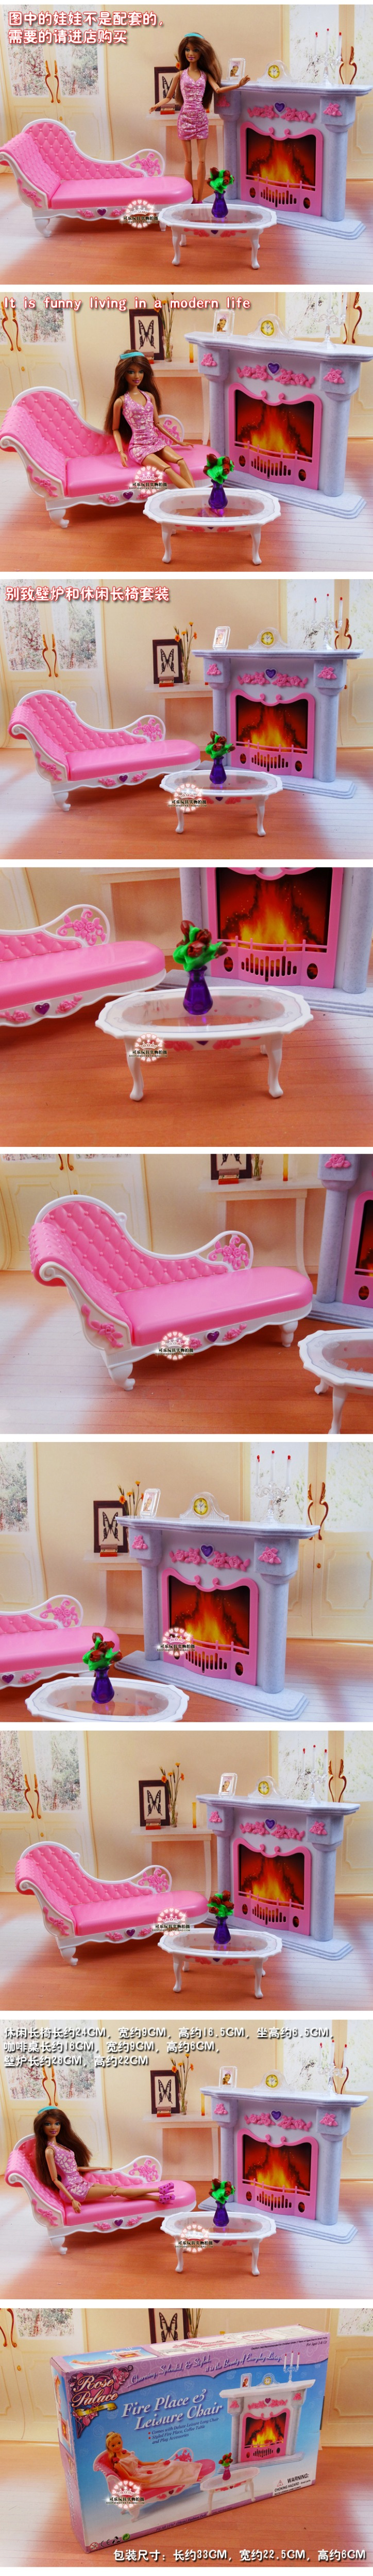 Free Shipping Fir place leasure chair accessories Girl t Play Set